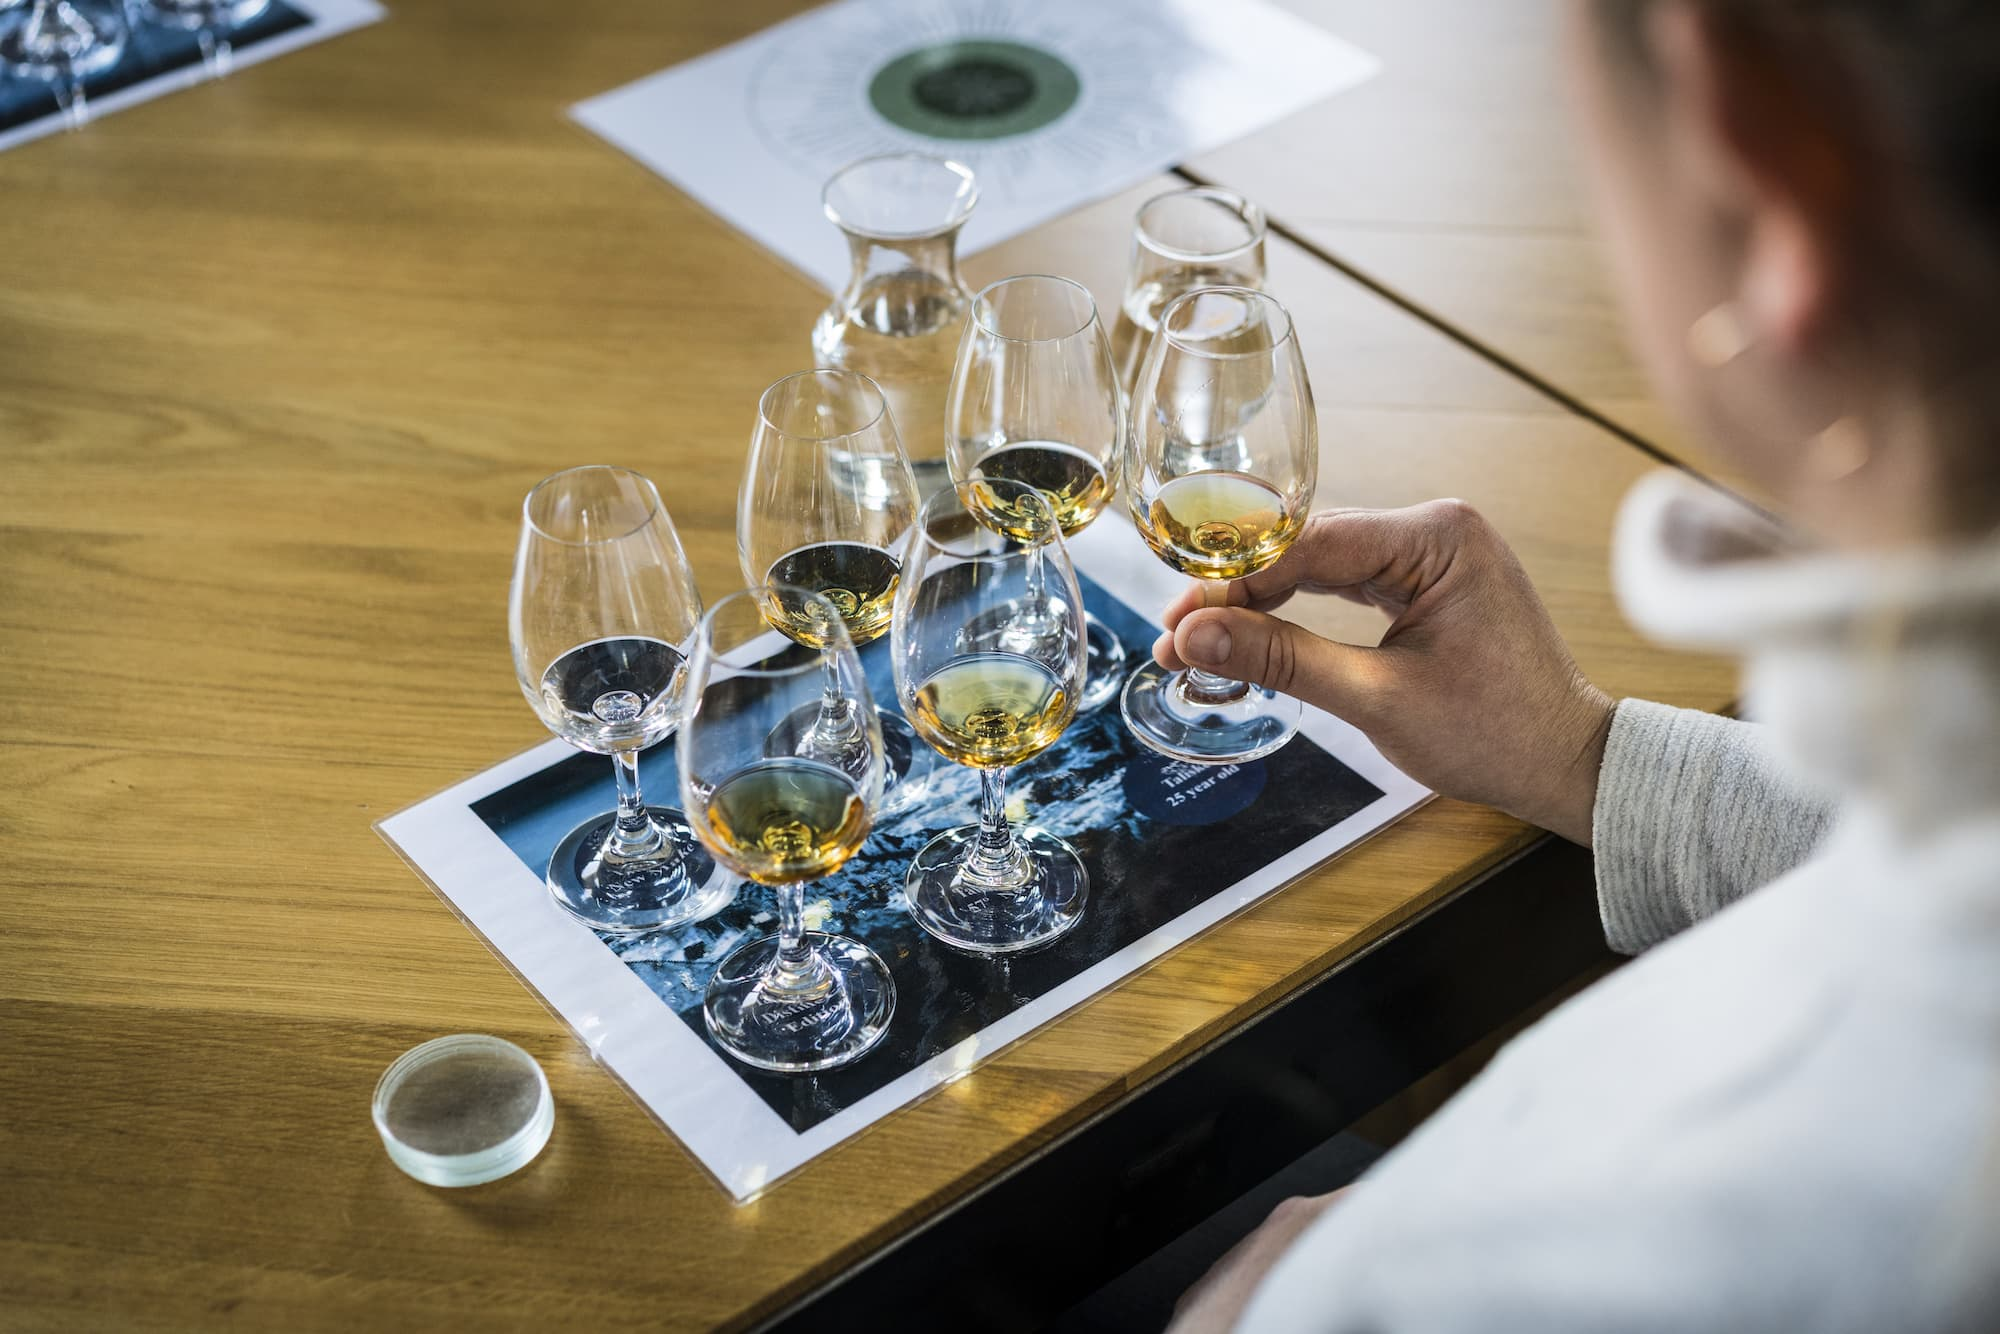 Elevate your next fine Scotch experience with the right whisky glasses